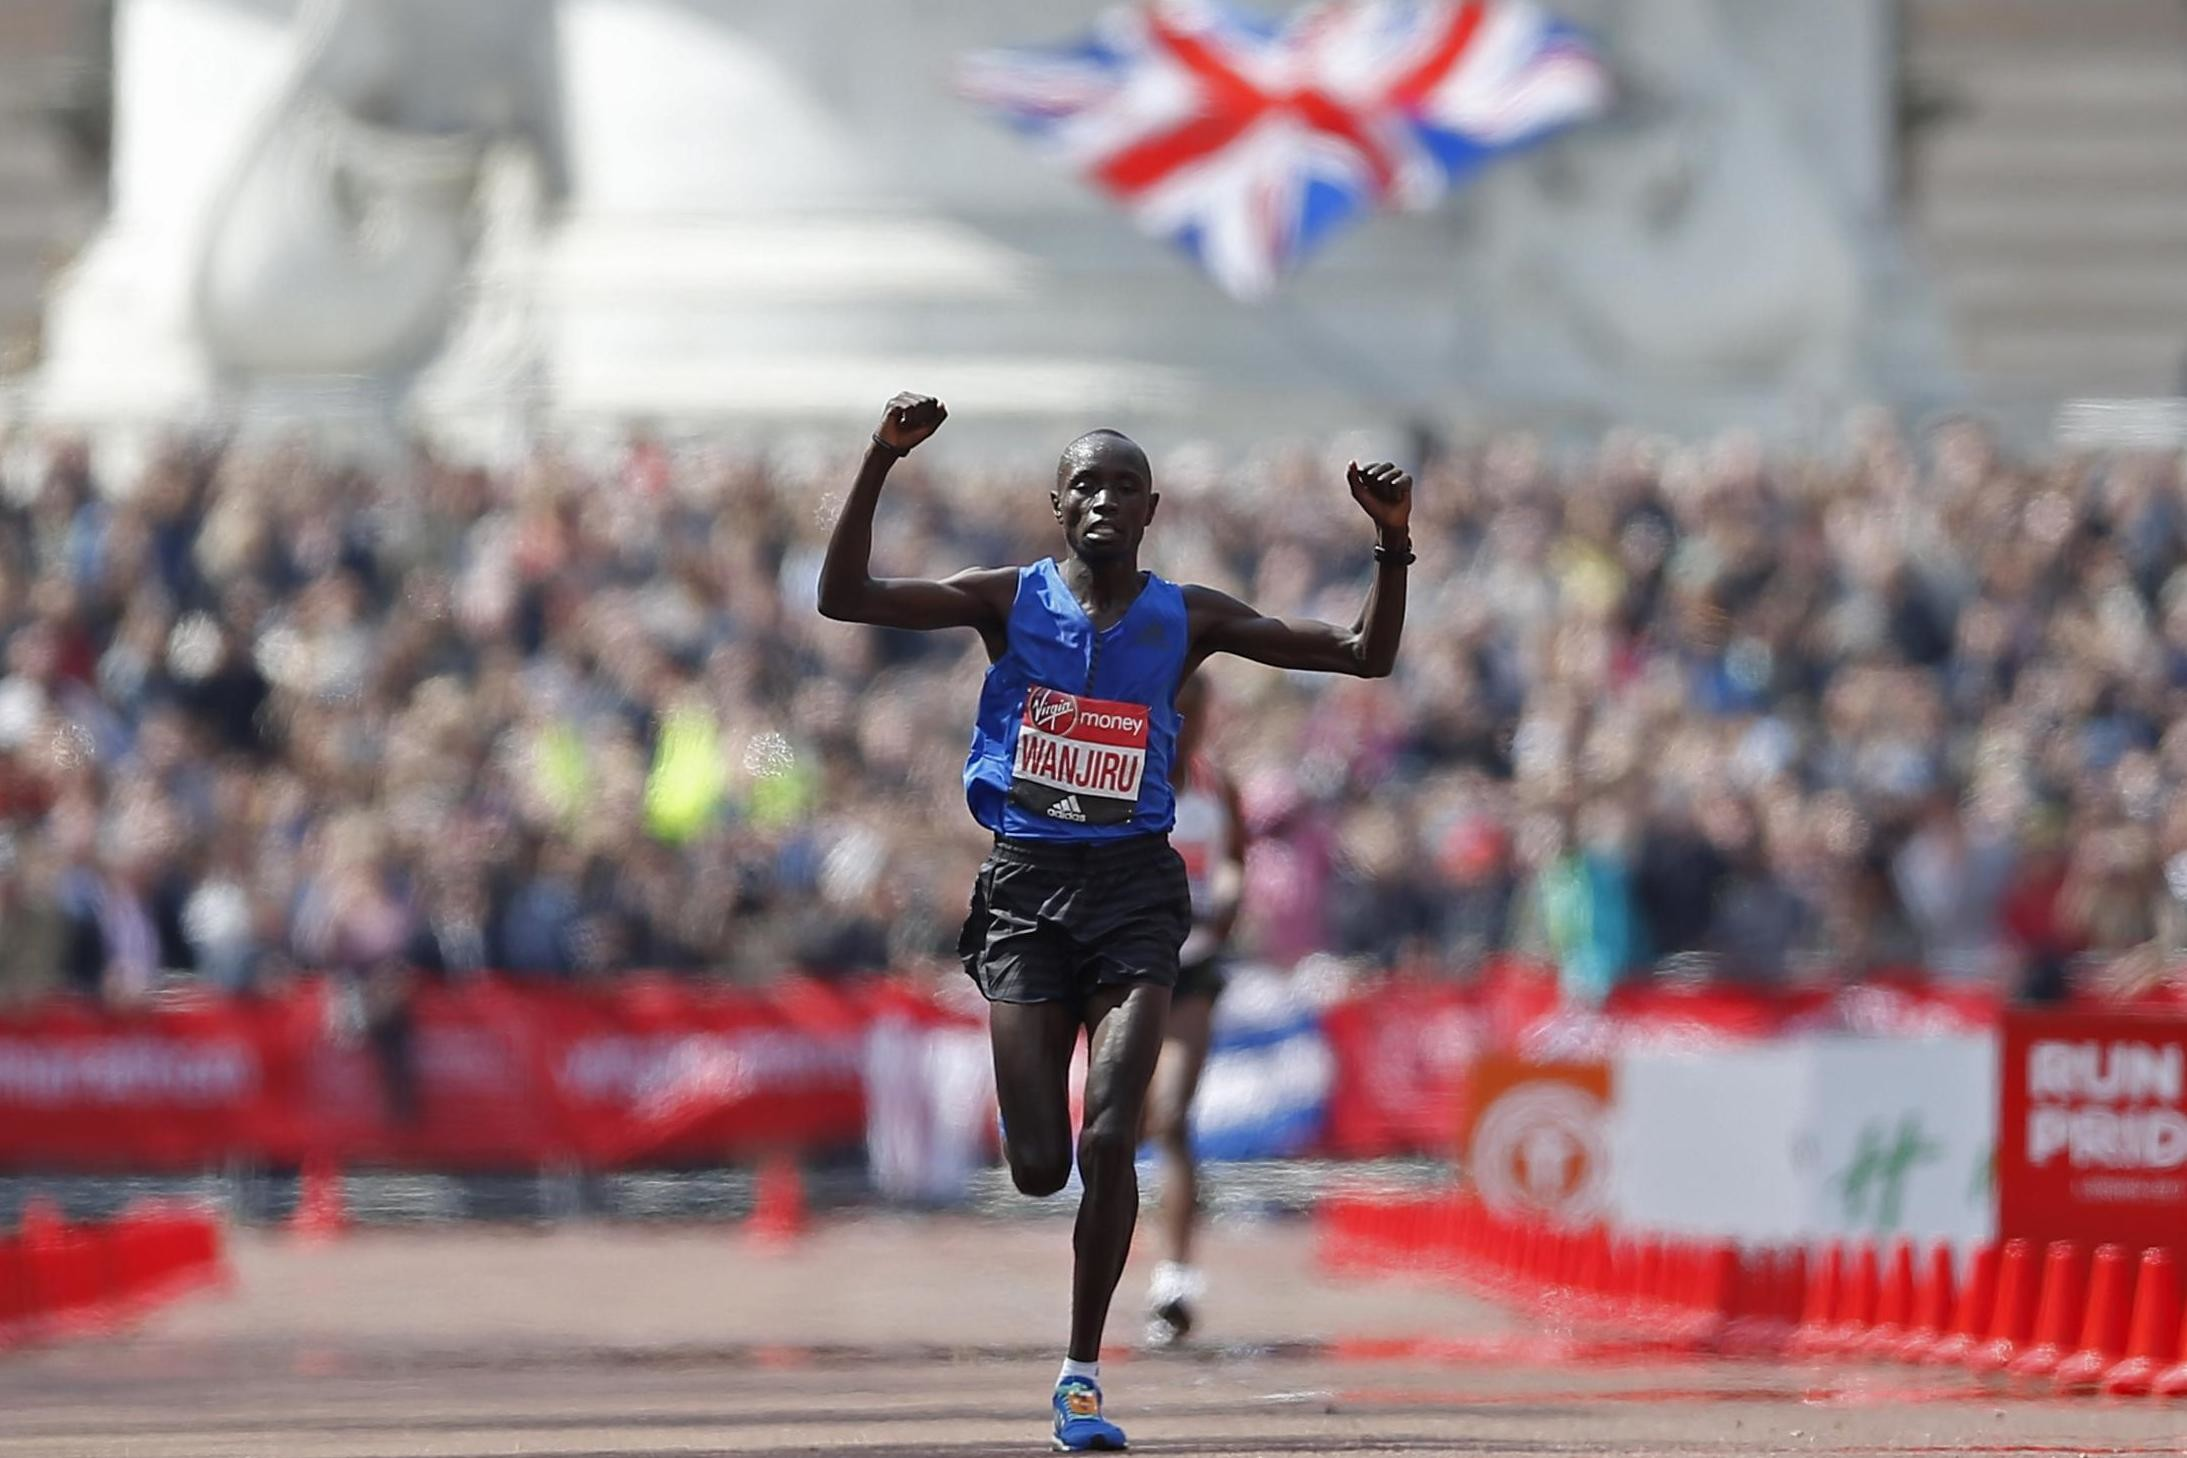 London's Marathon winner Wanjiru to Run London Big Half